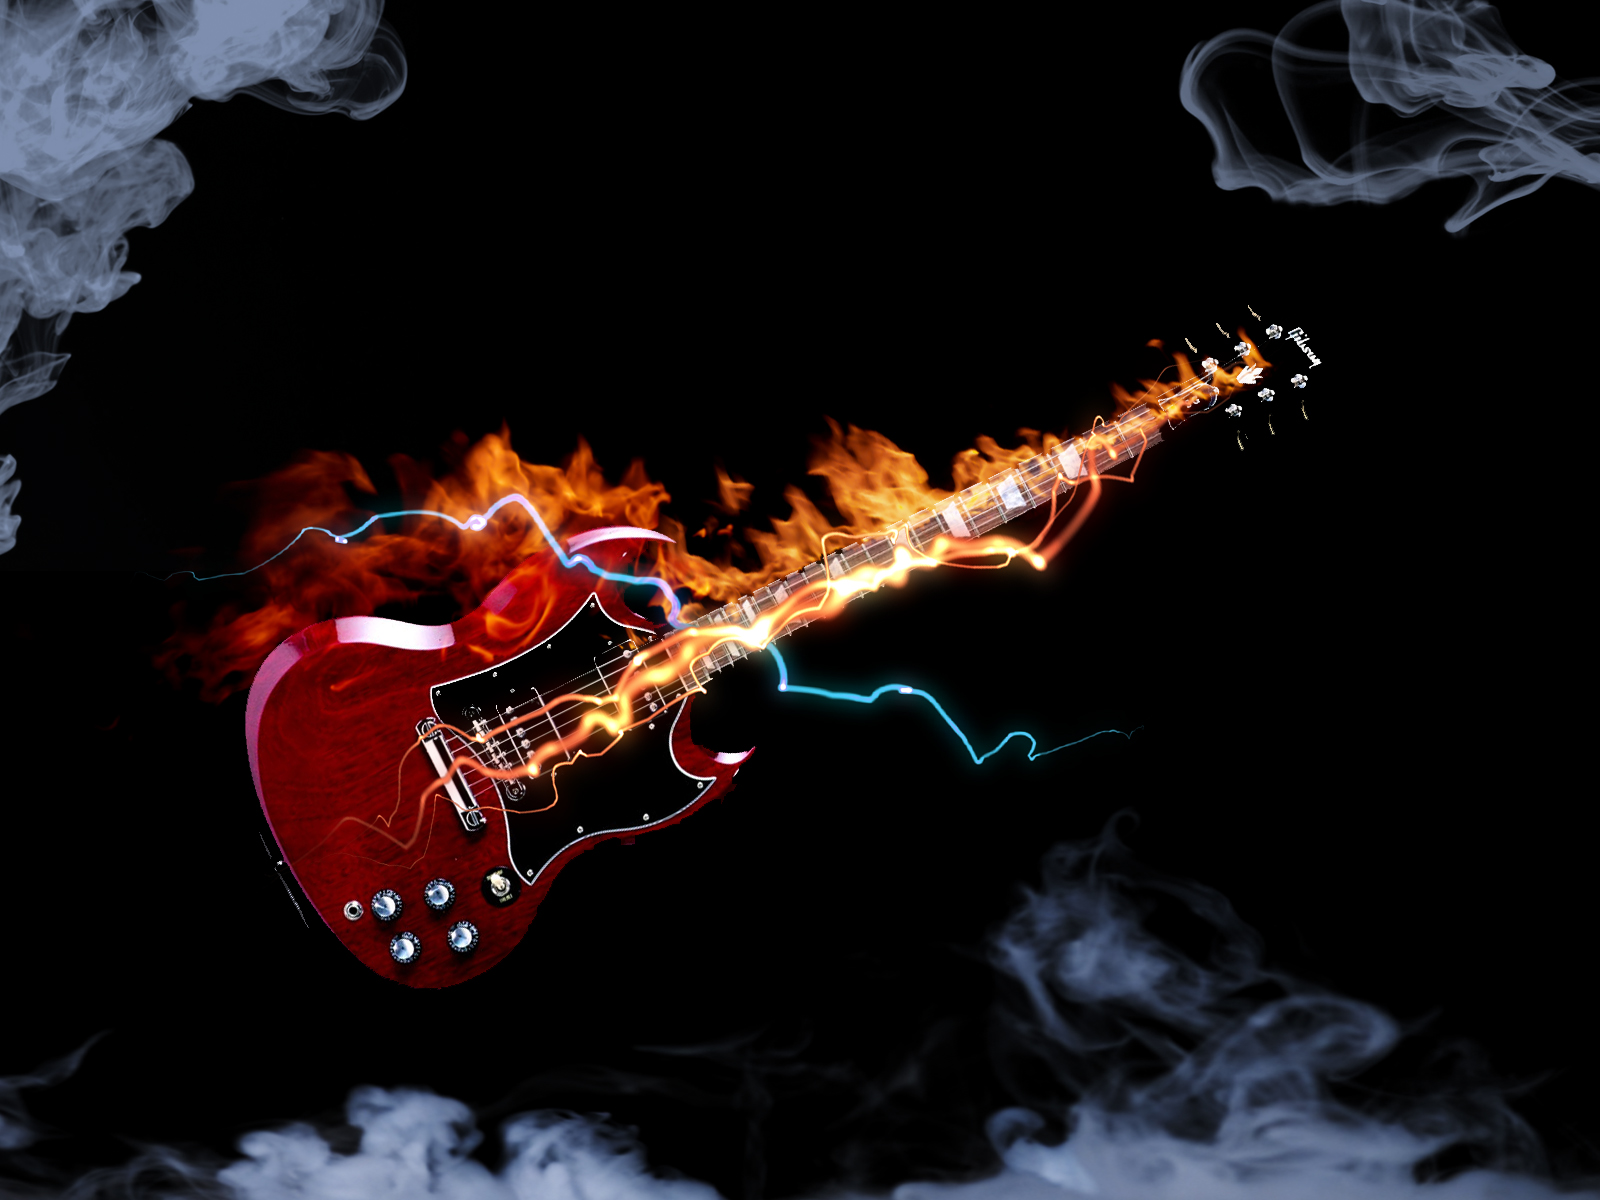 electric guitar art wallpaper fire - photo #17